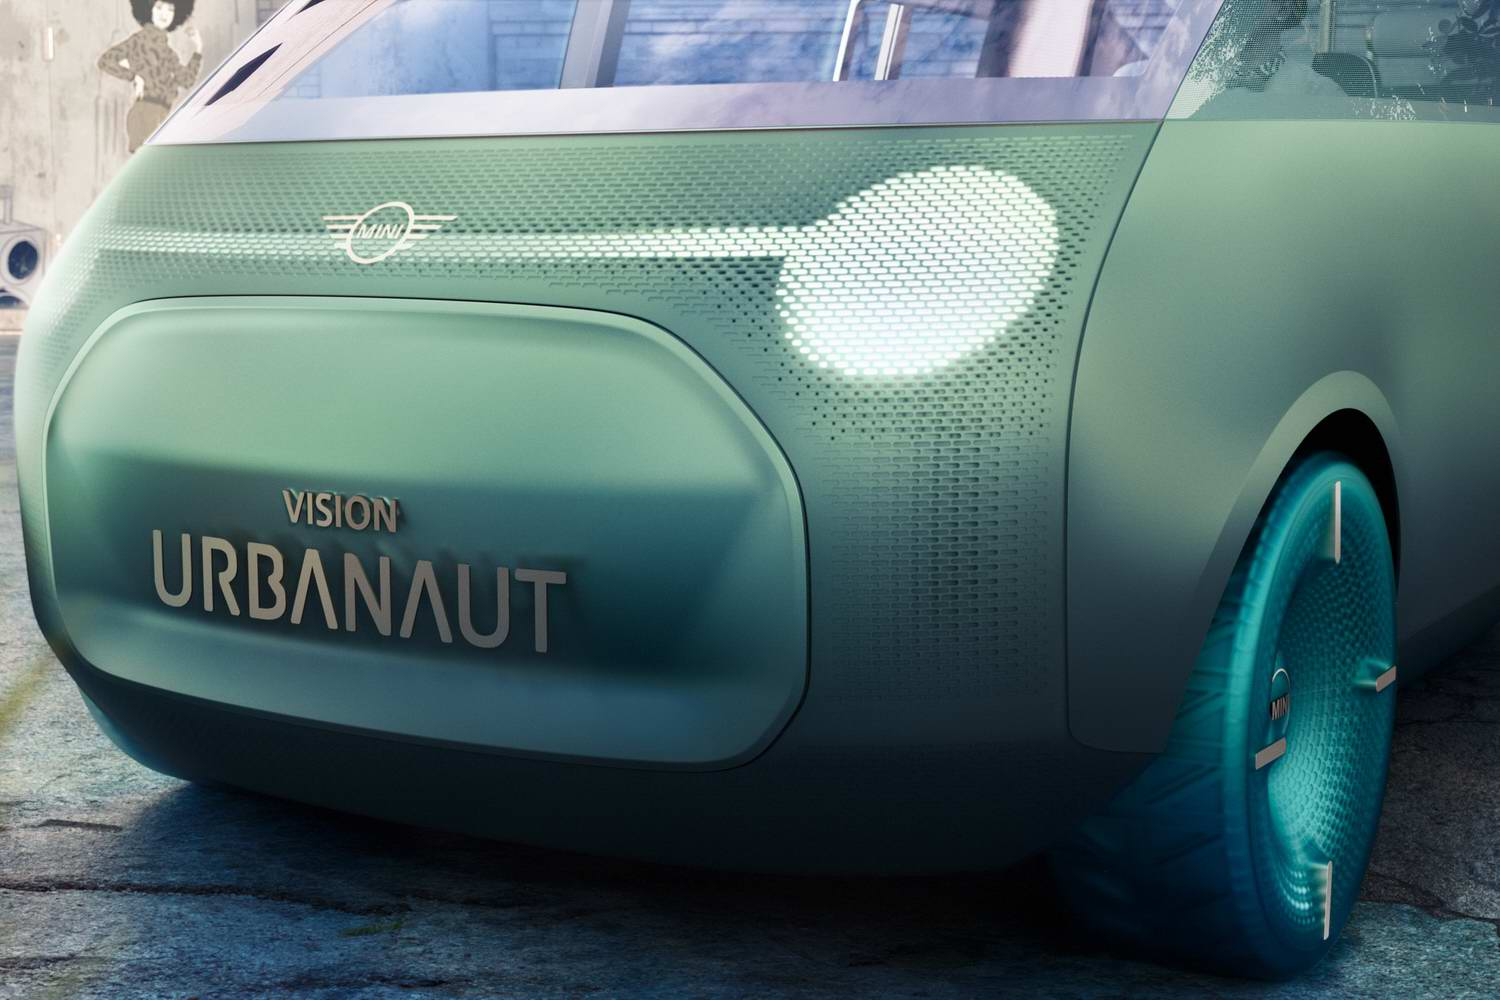 Car News | MINI presents new Urbanaut concept | CompleteCar.ie